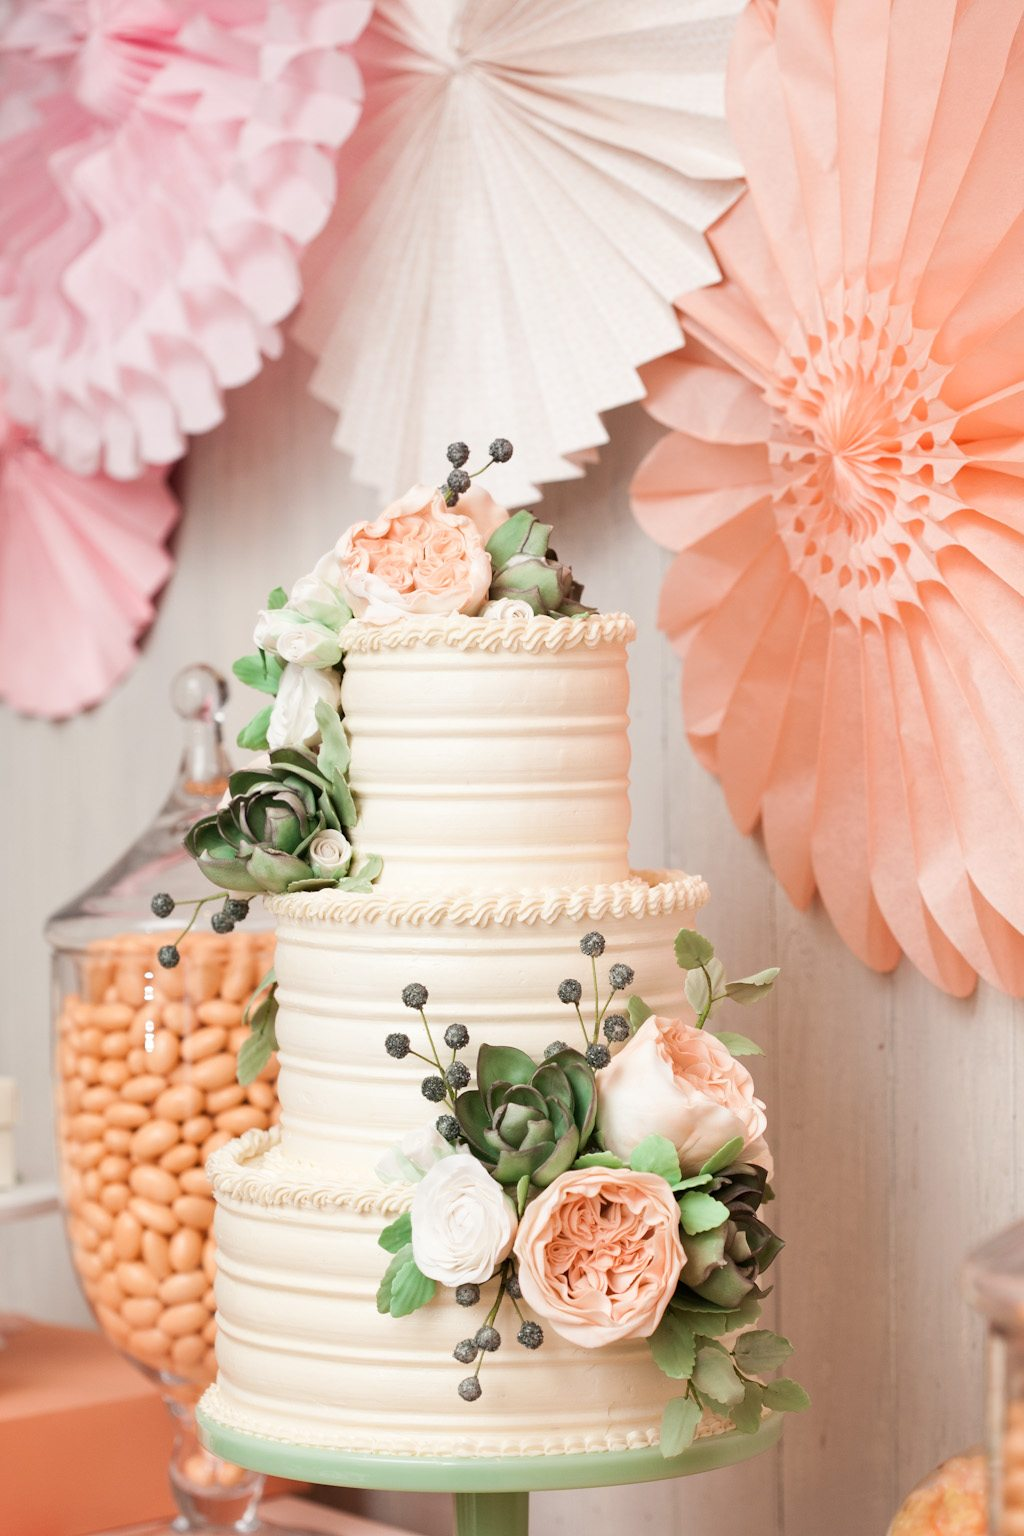 wedding cake with flowers The Sweetest Occasion — The